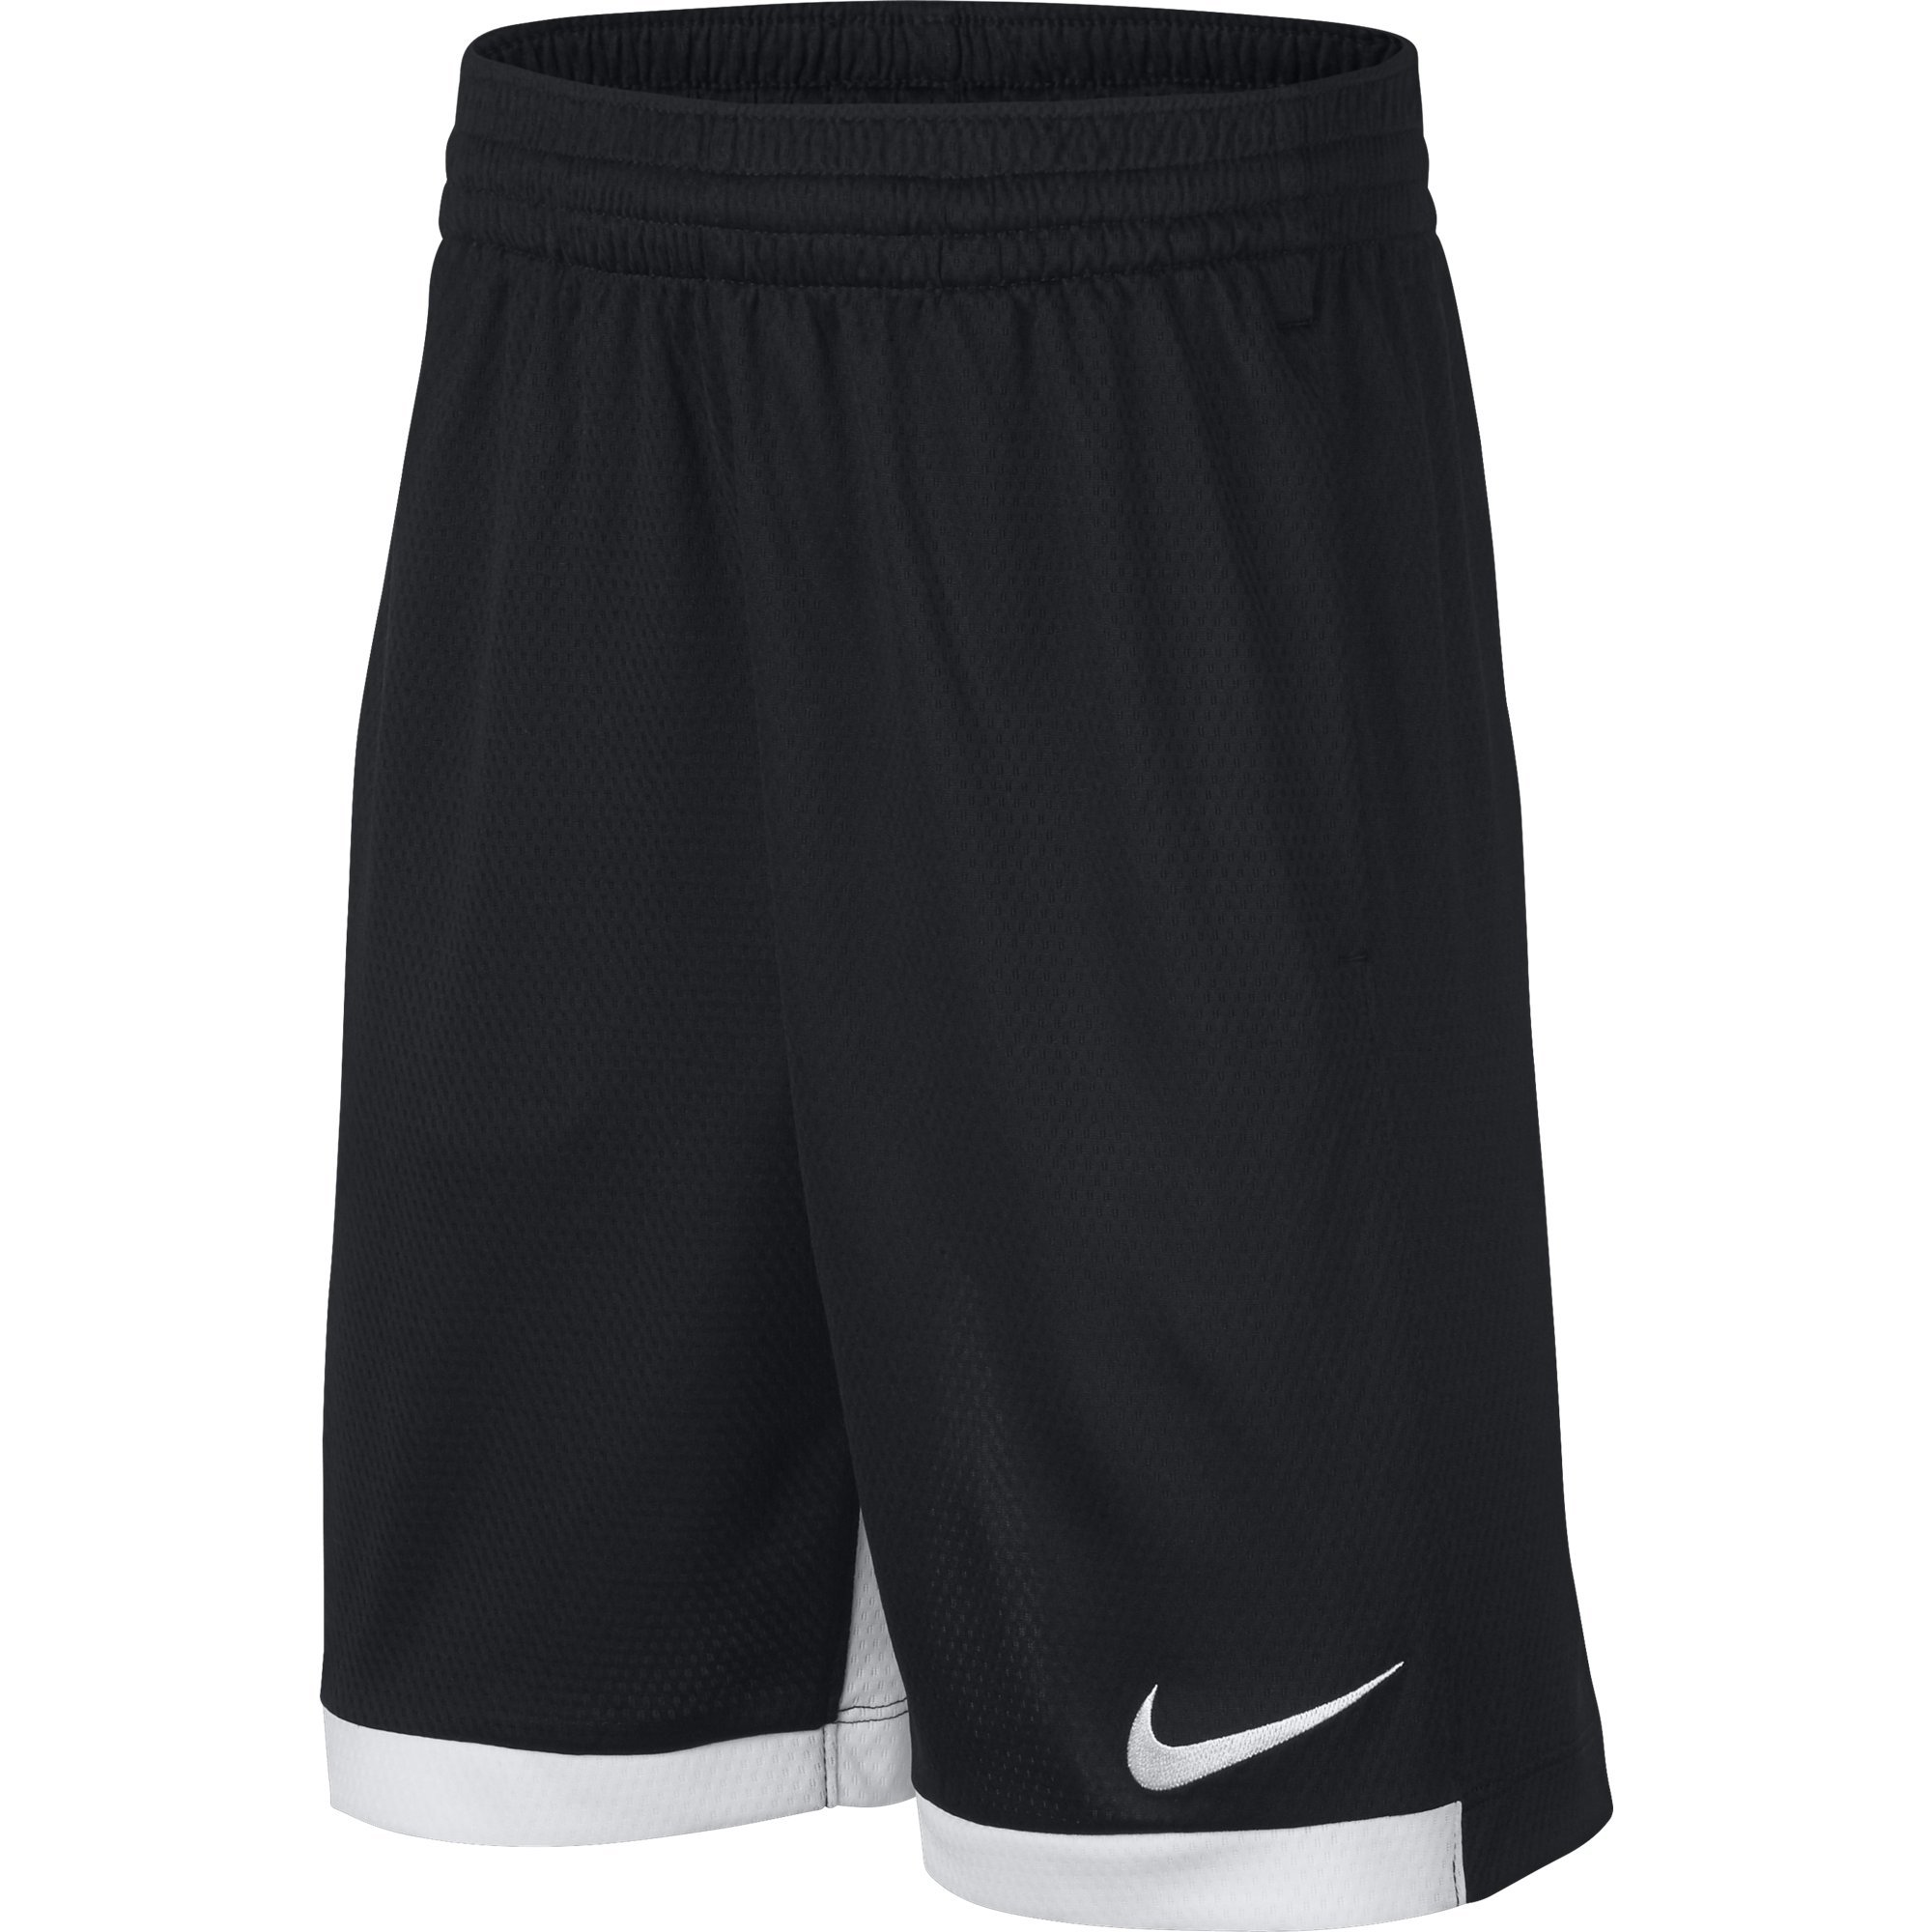 NIKE Boys' Dry Trophy Athletic Shorts, Black/White/White, X-Small